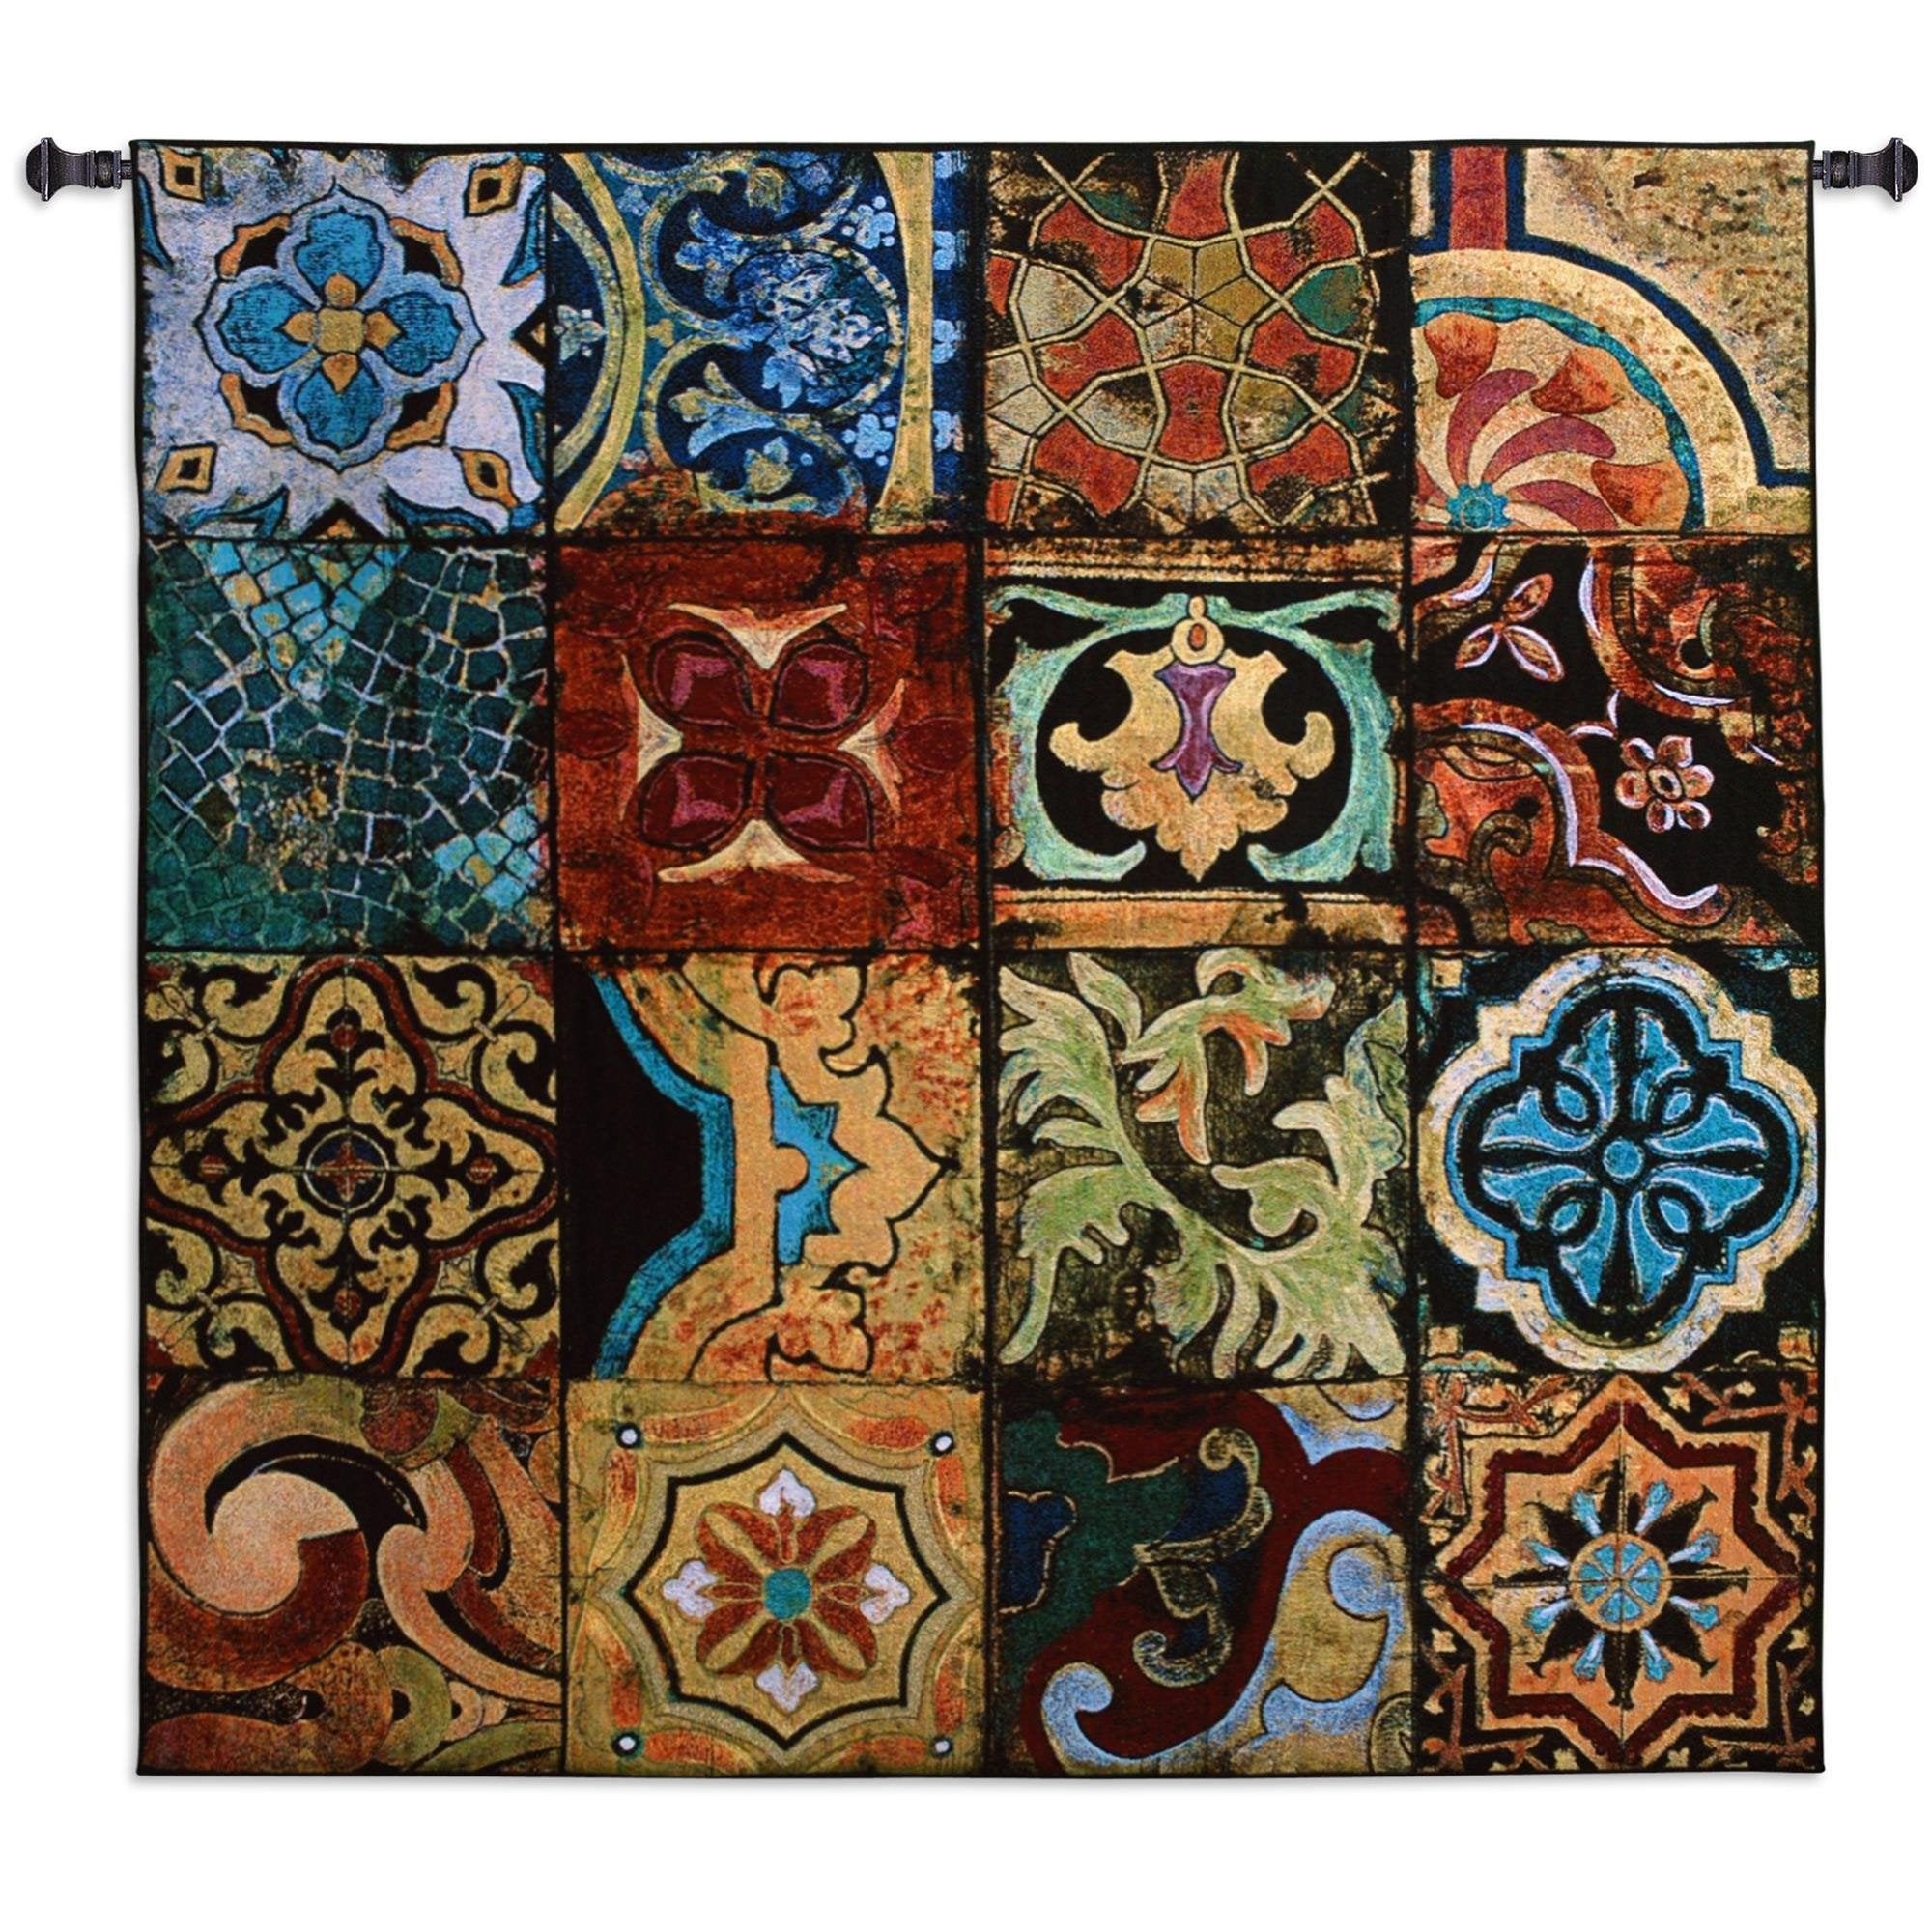 Kaleidoscopic Wall Hanging Tapestry